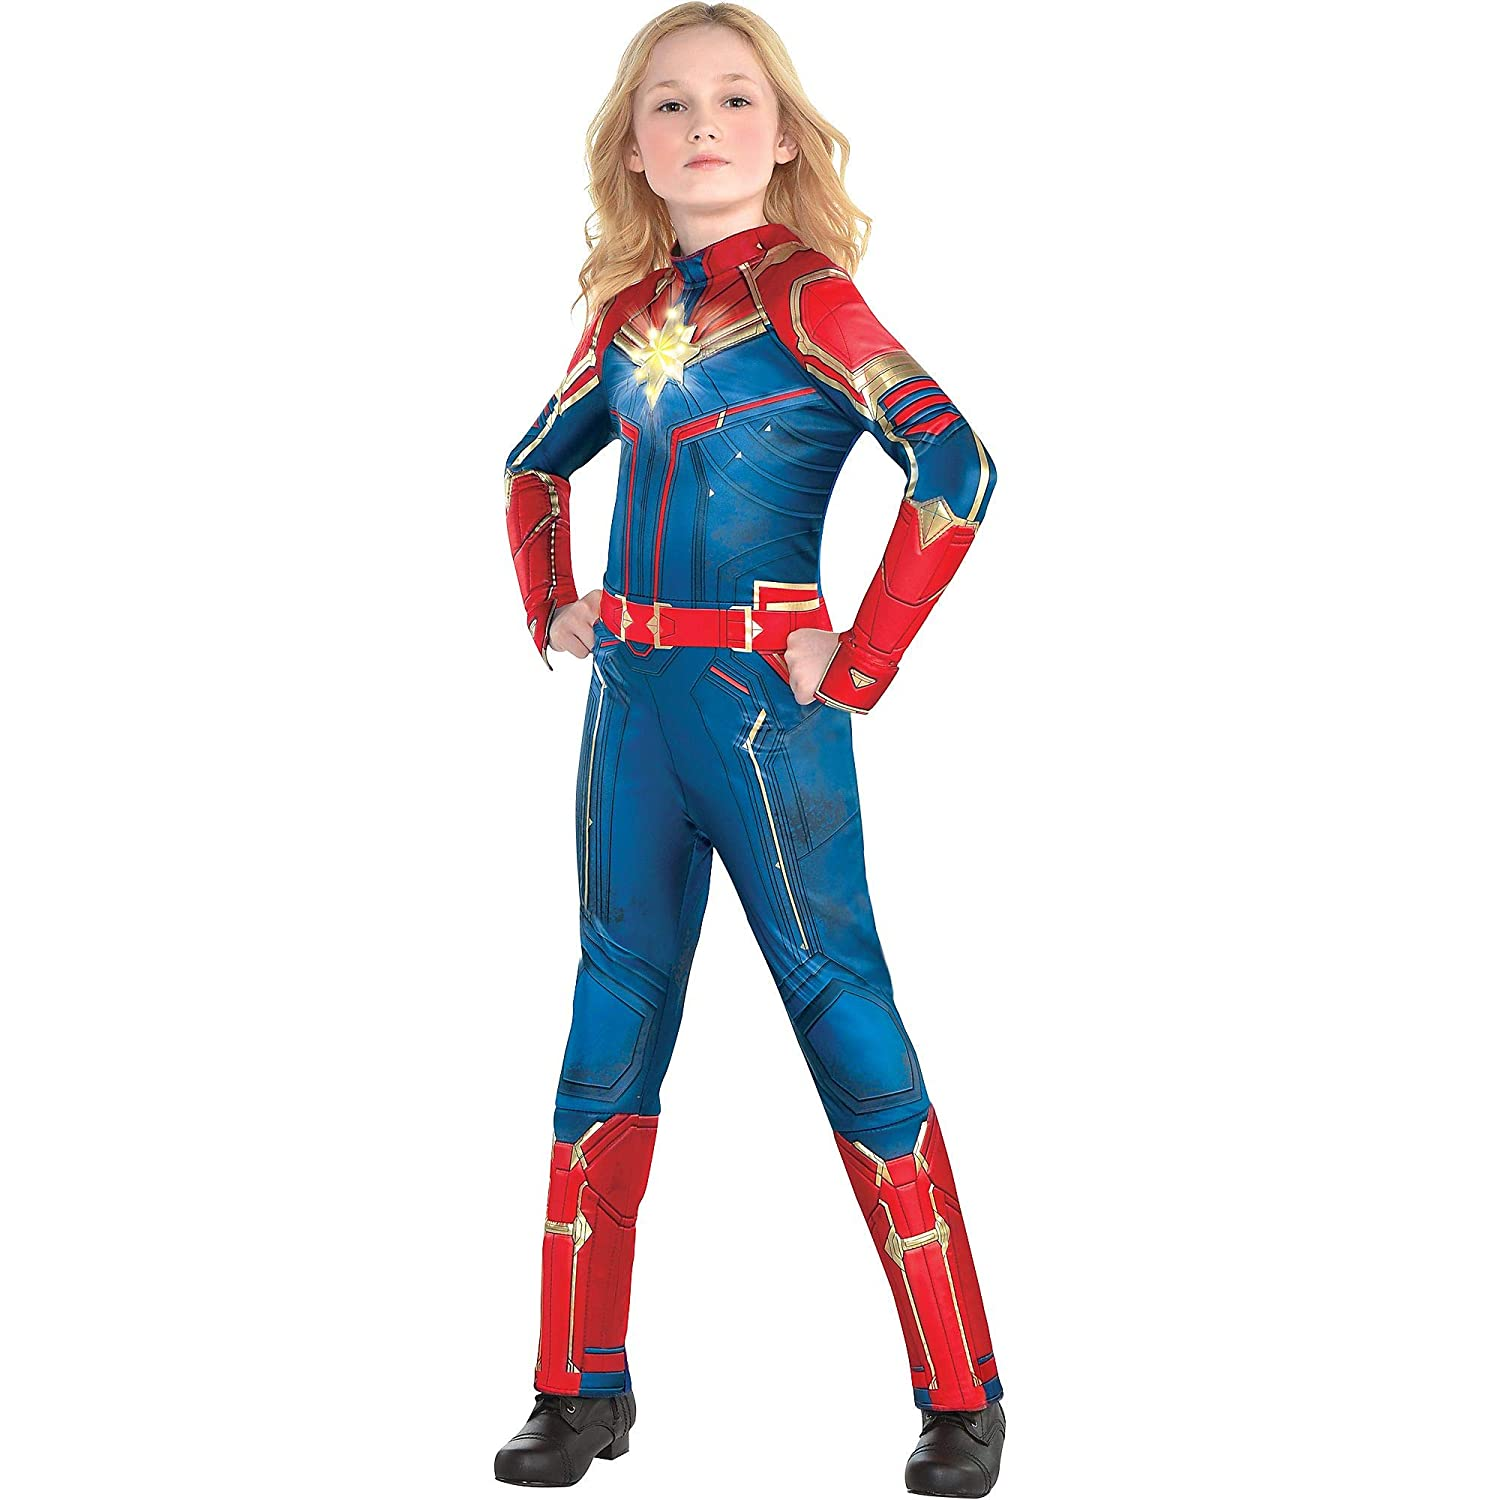 Light-Up Captain Marvel Costume for Girls